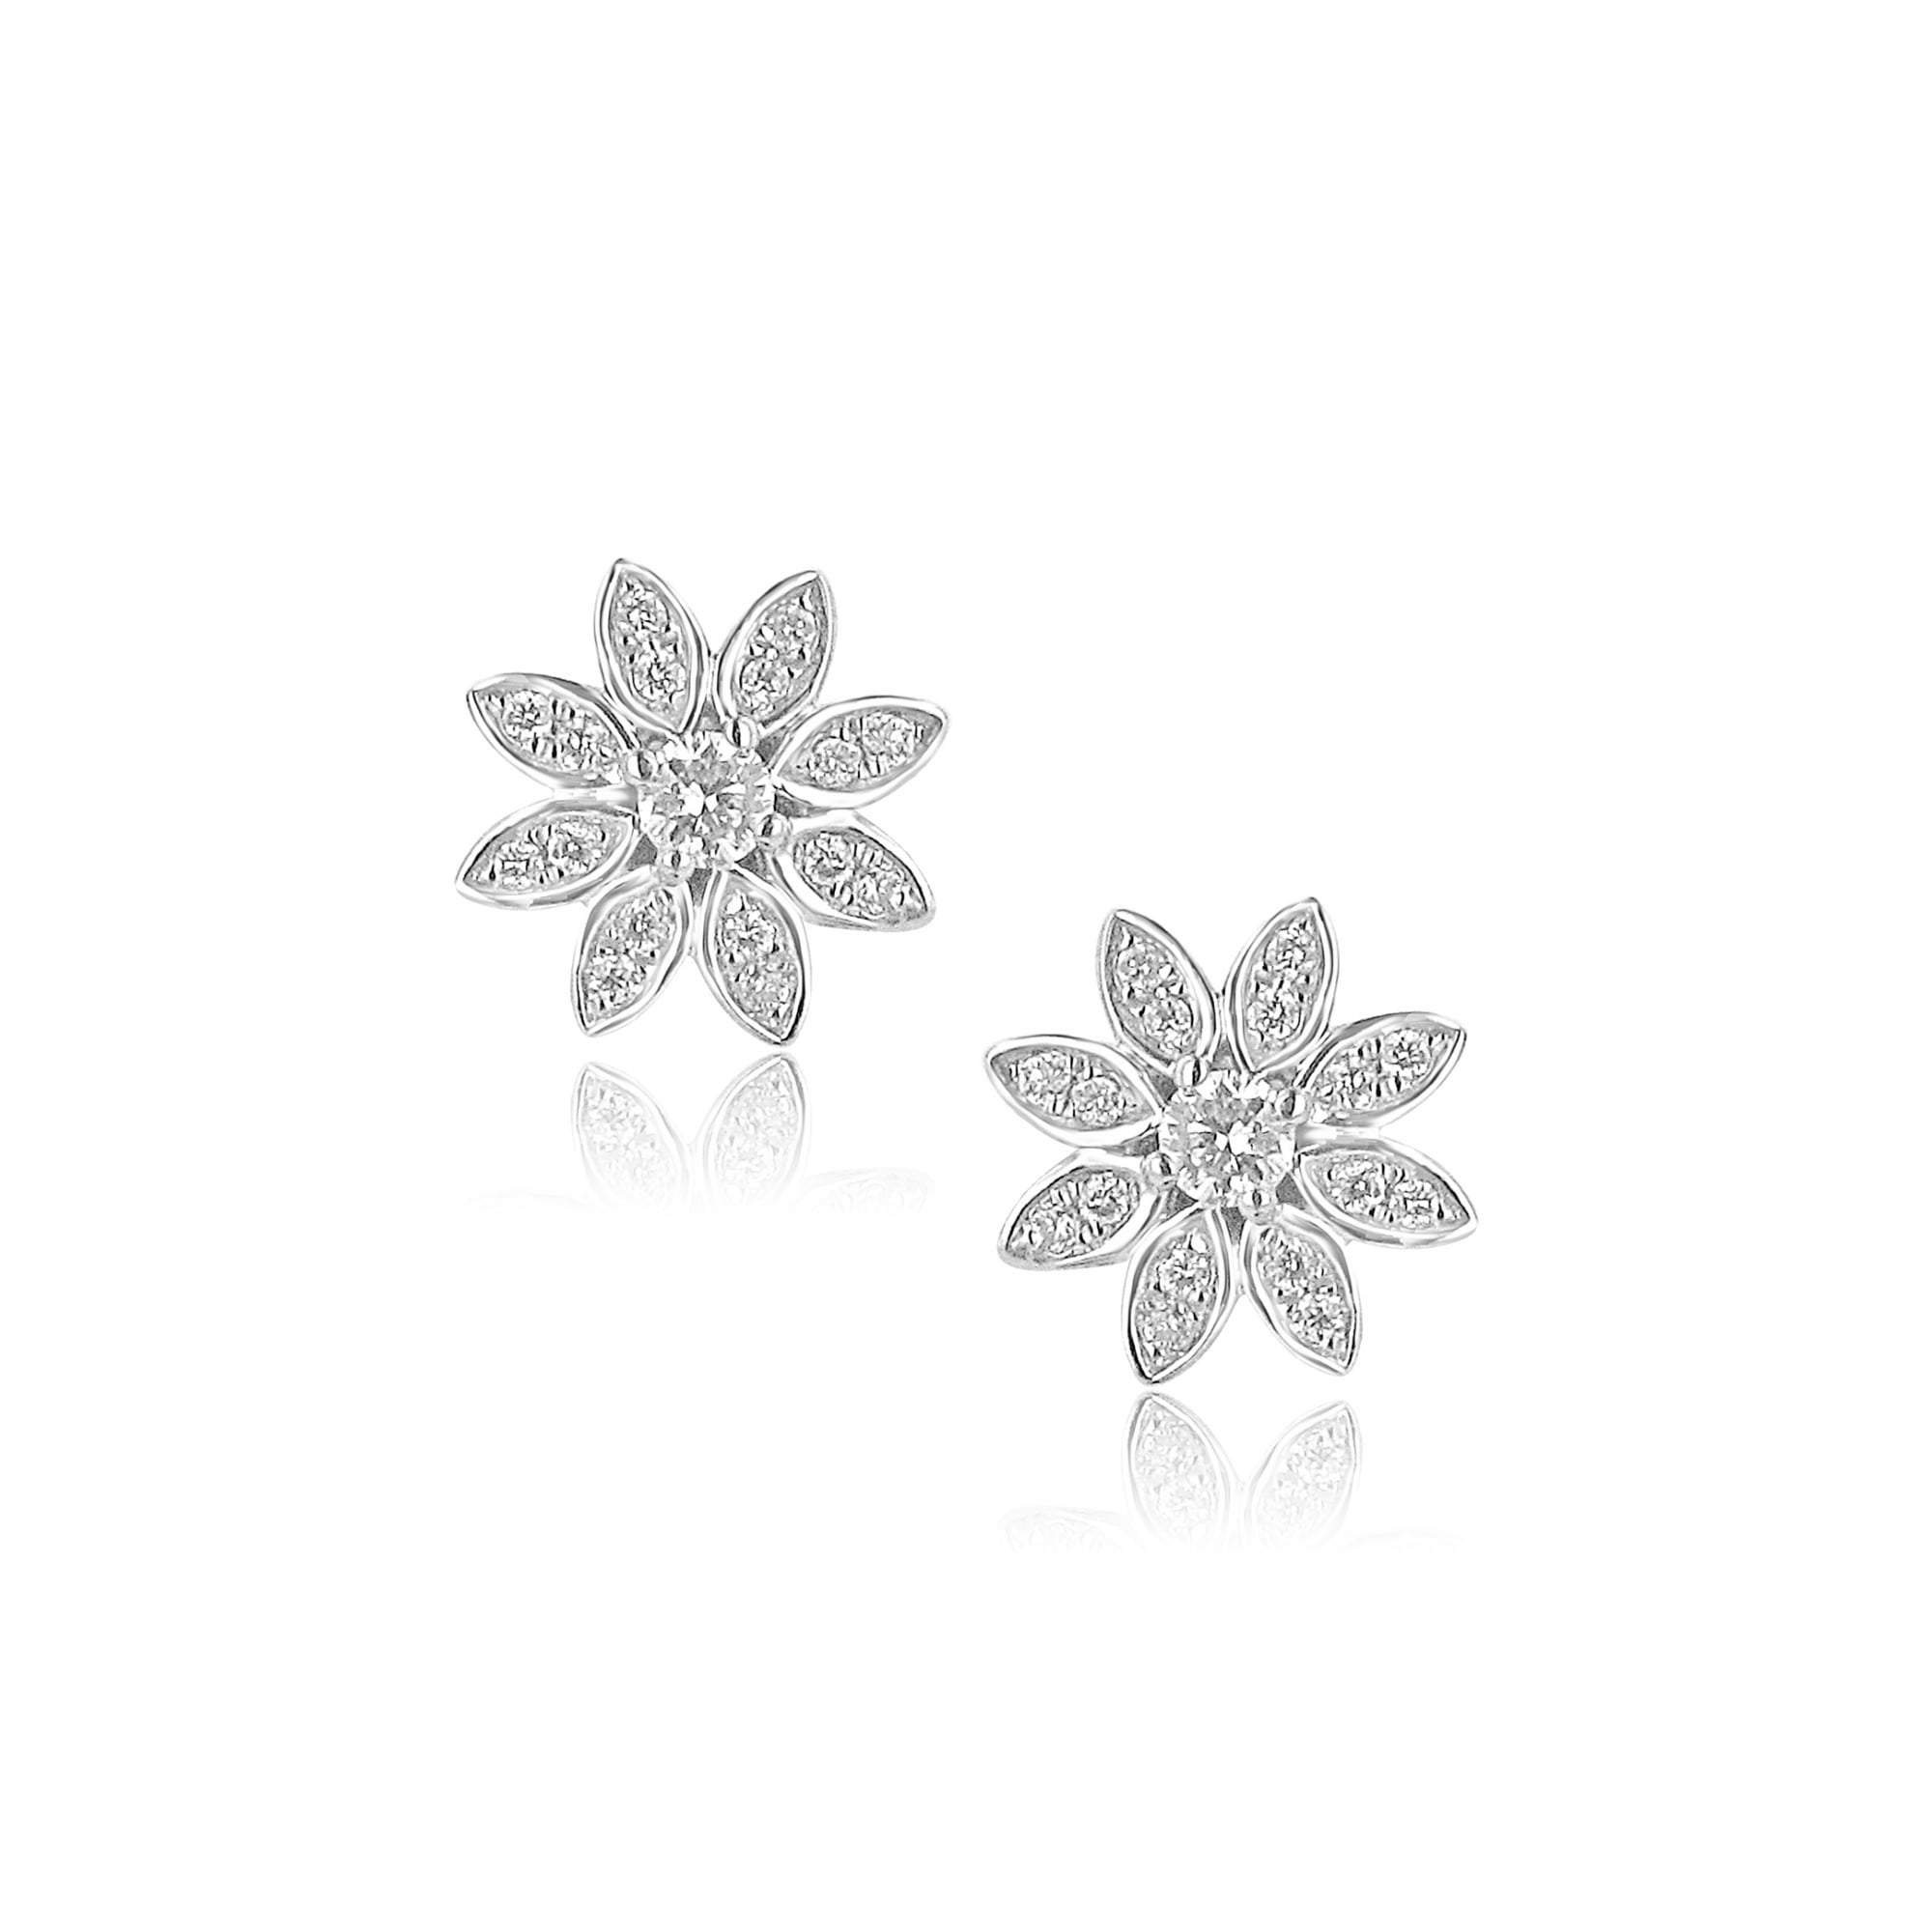 9ct White Gold and Diamond Flower Design Cluster Earrings - Womens ...